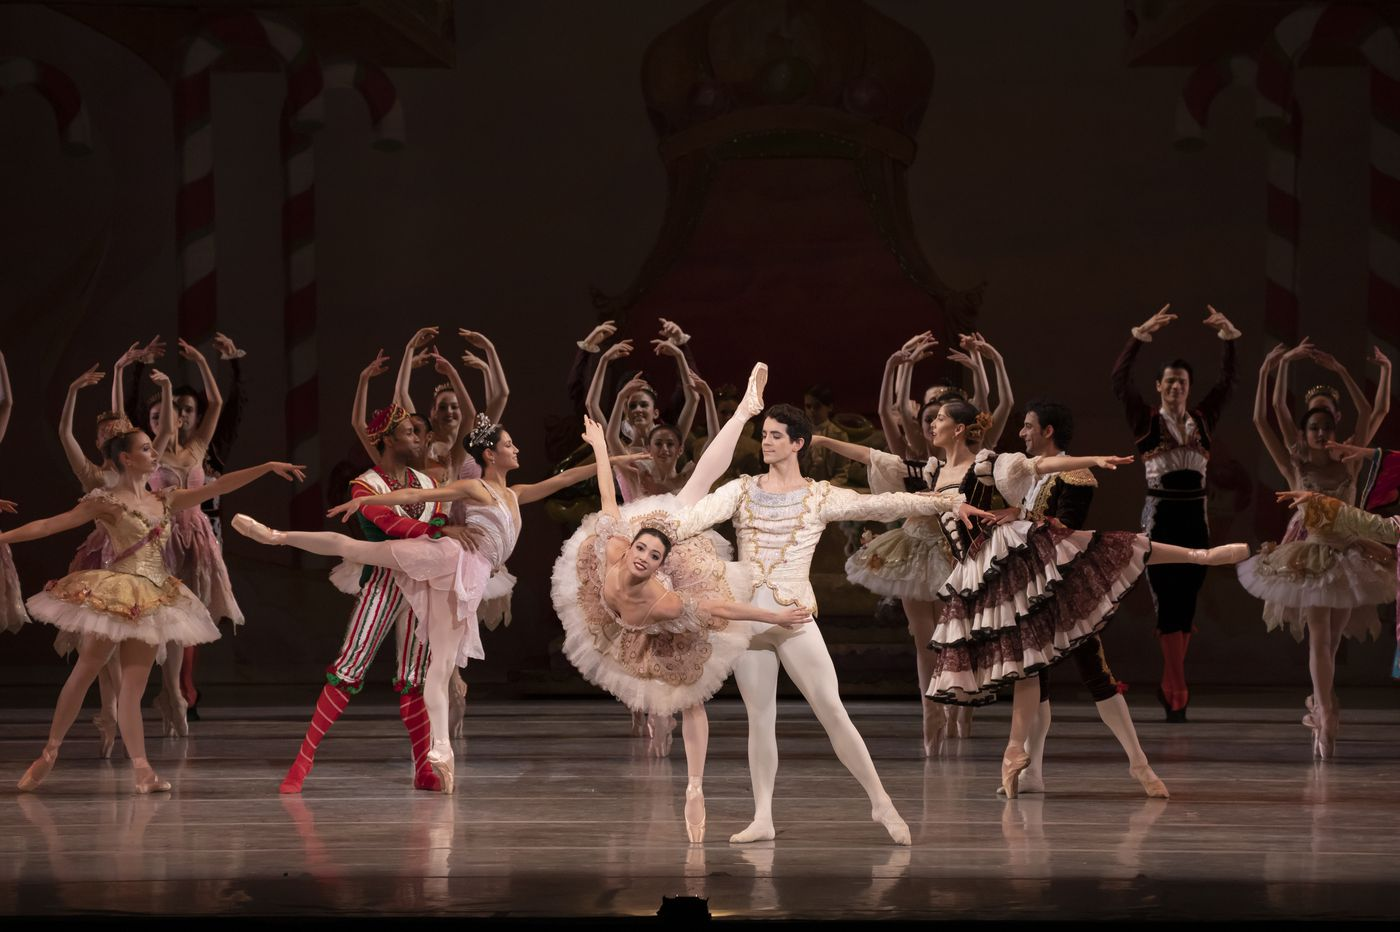 Pa. Ballet's 'Nutcracker' gets everything lavishly right in 50th anniversary production